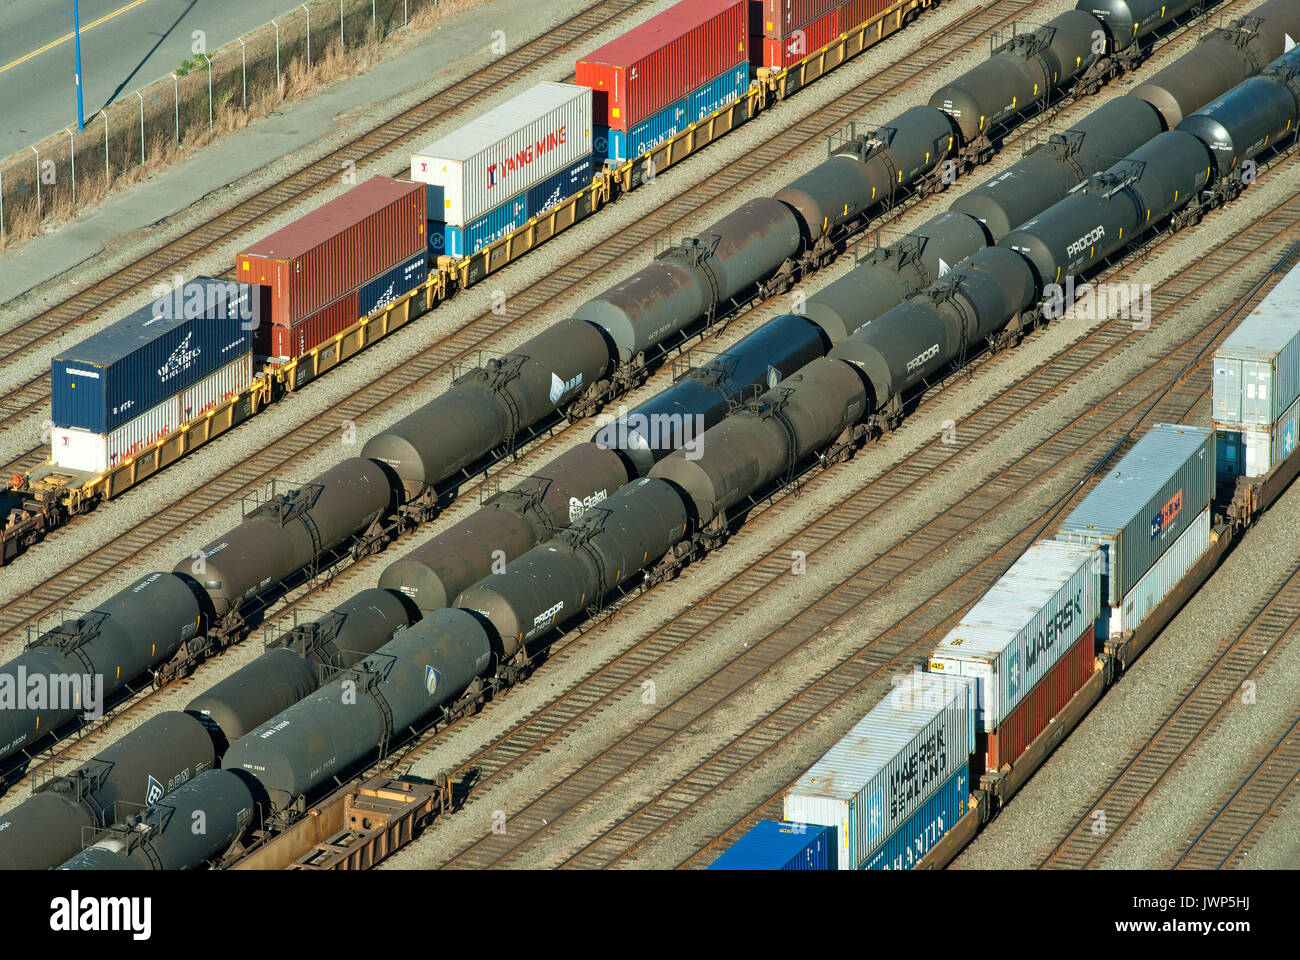 Freight wagons at the railway goods station of Vancouver, British Columbia, Canada - Stock Image